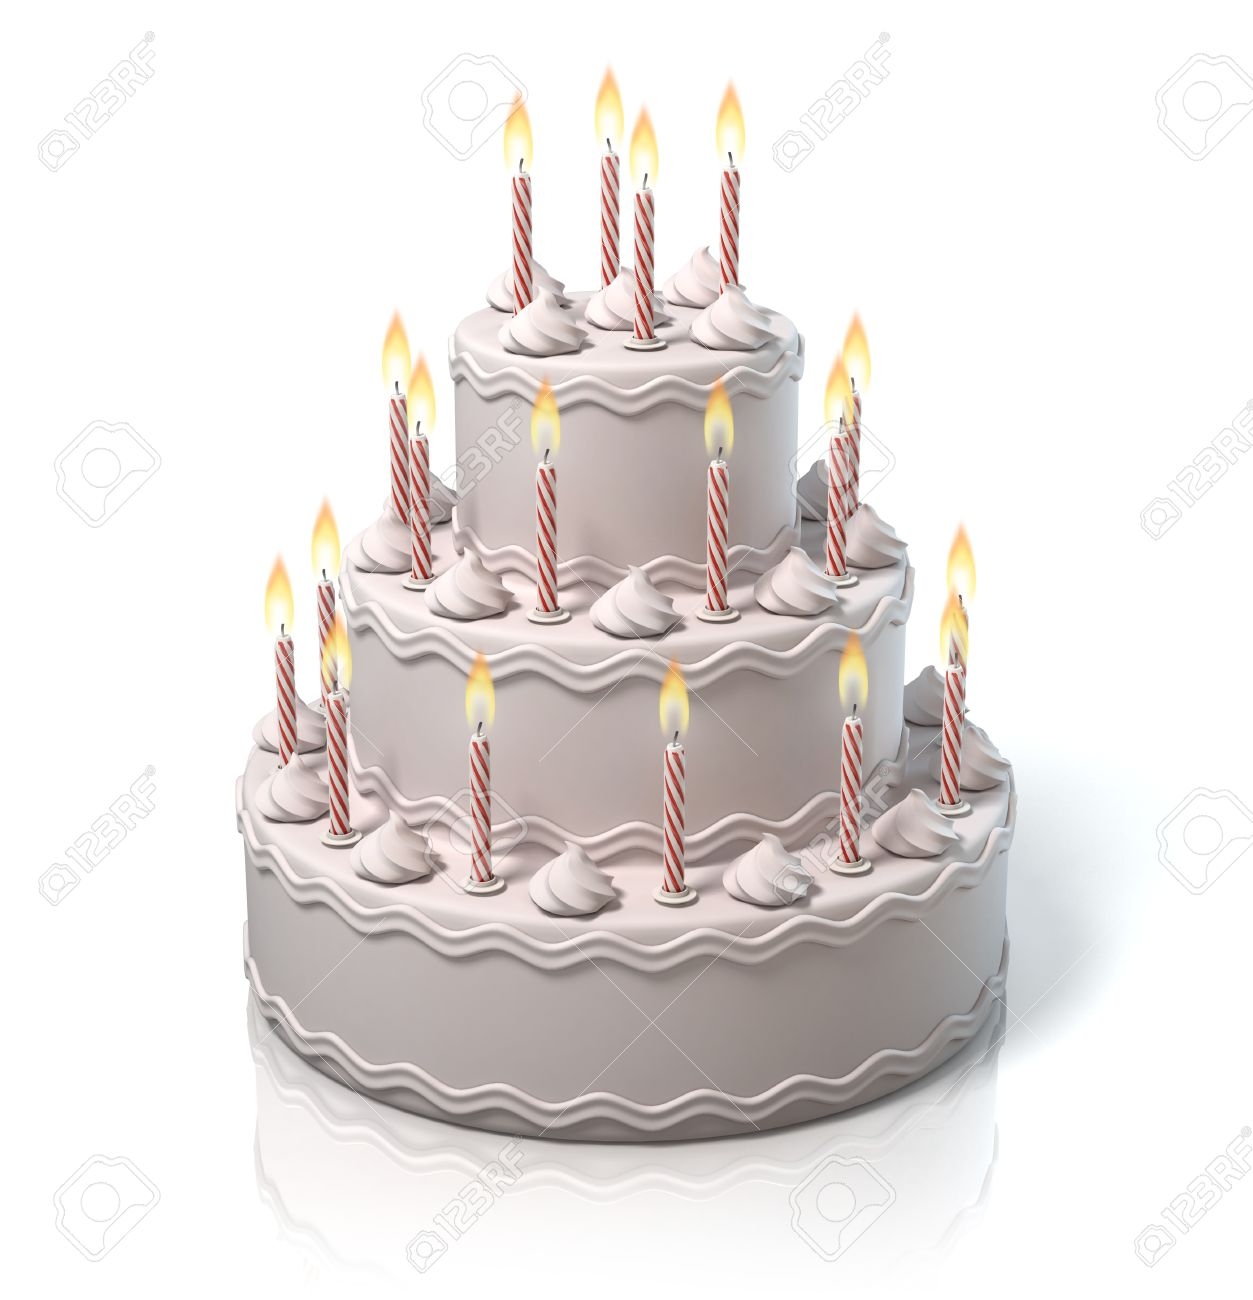 Birthday Cake, Anniversary Cake Stock Photo, Picture And Royalty ...